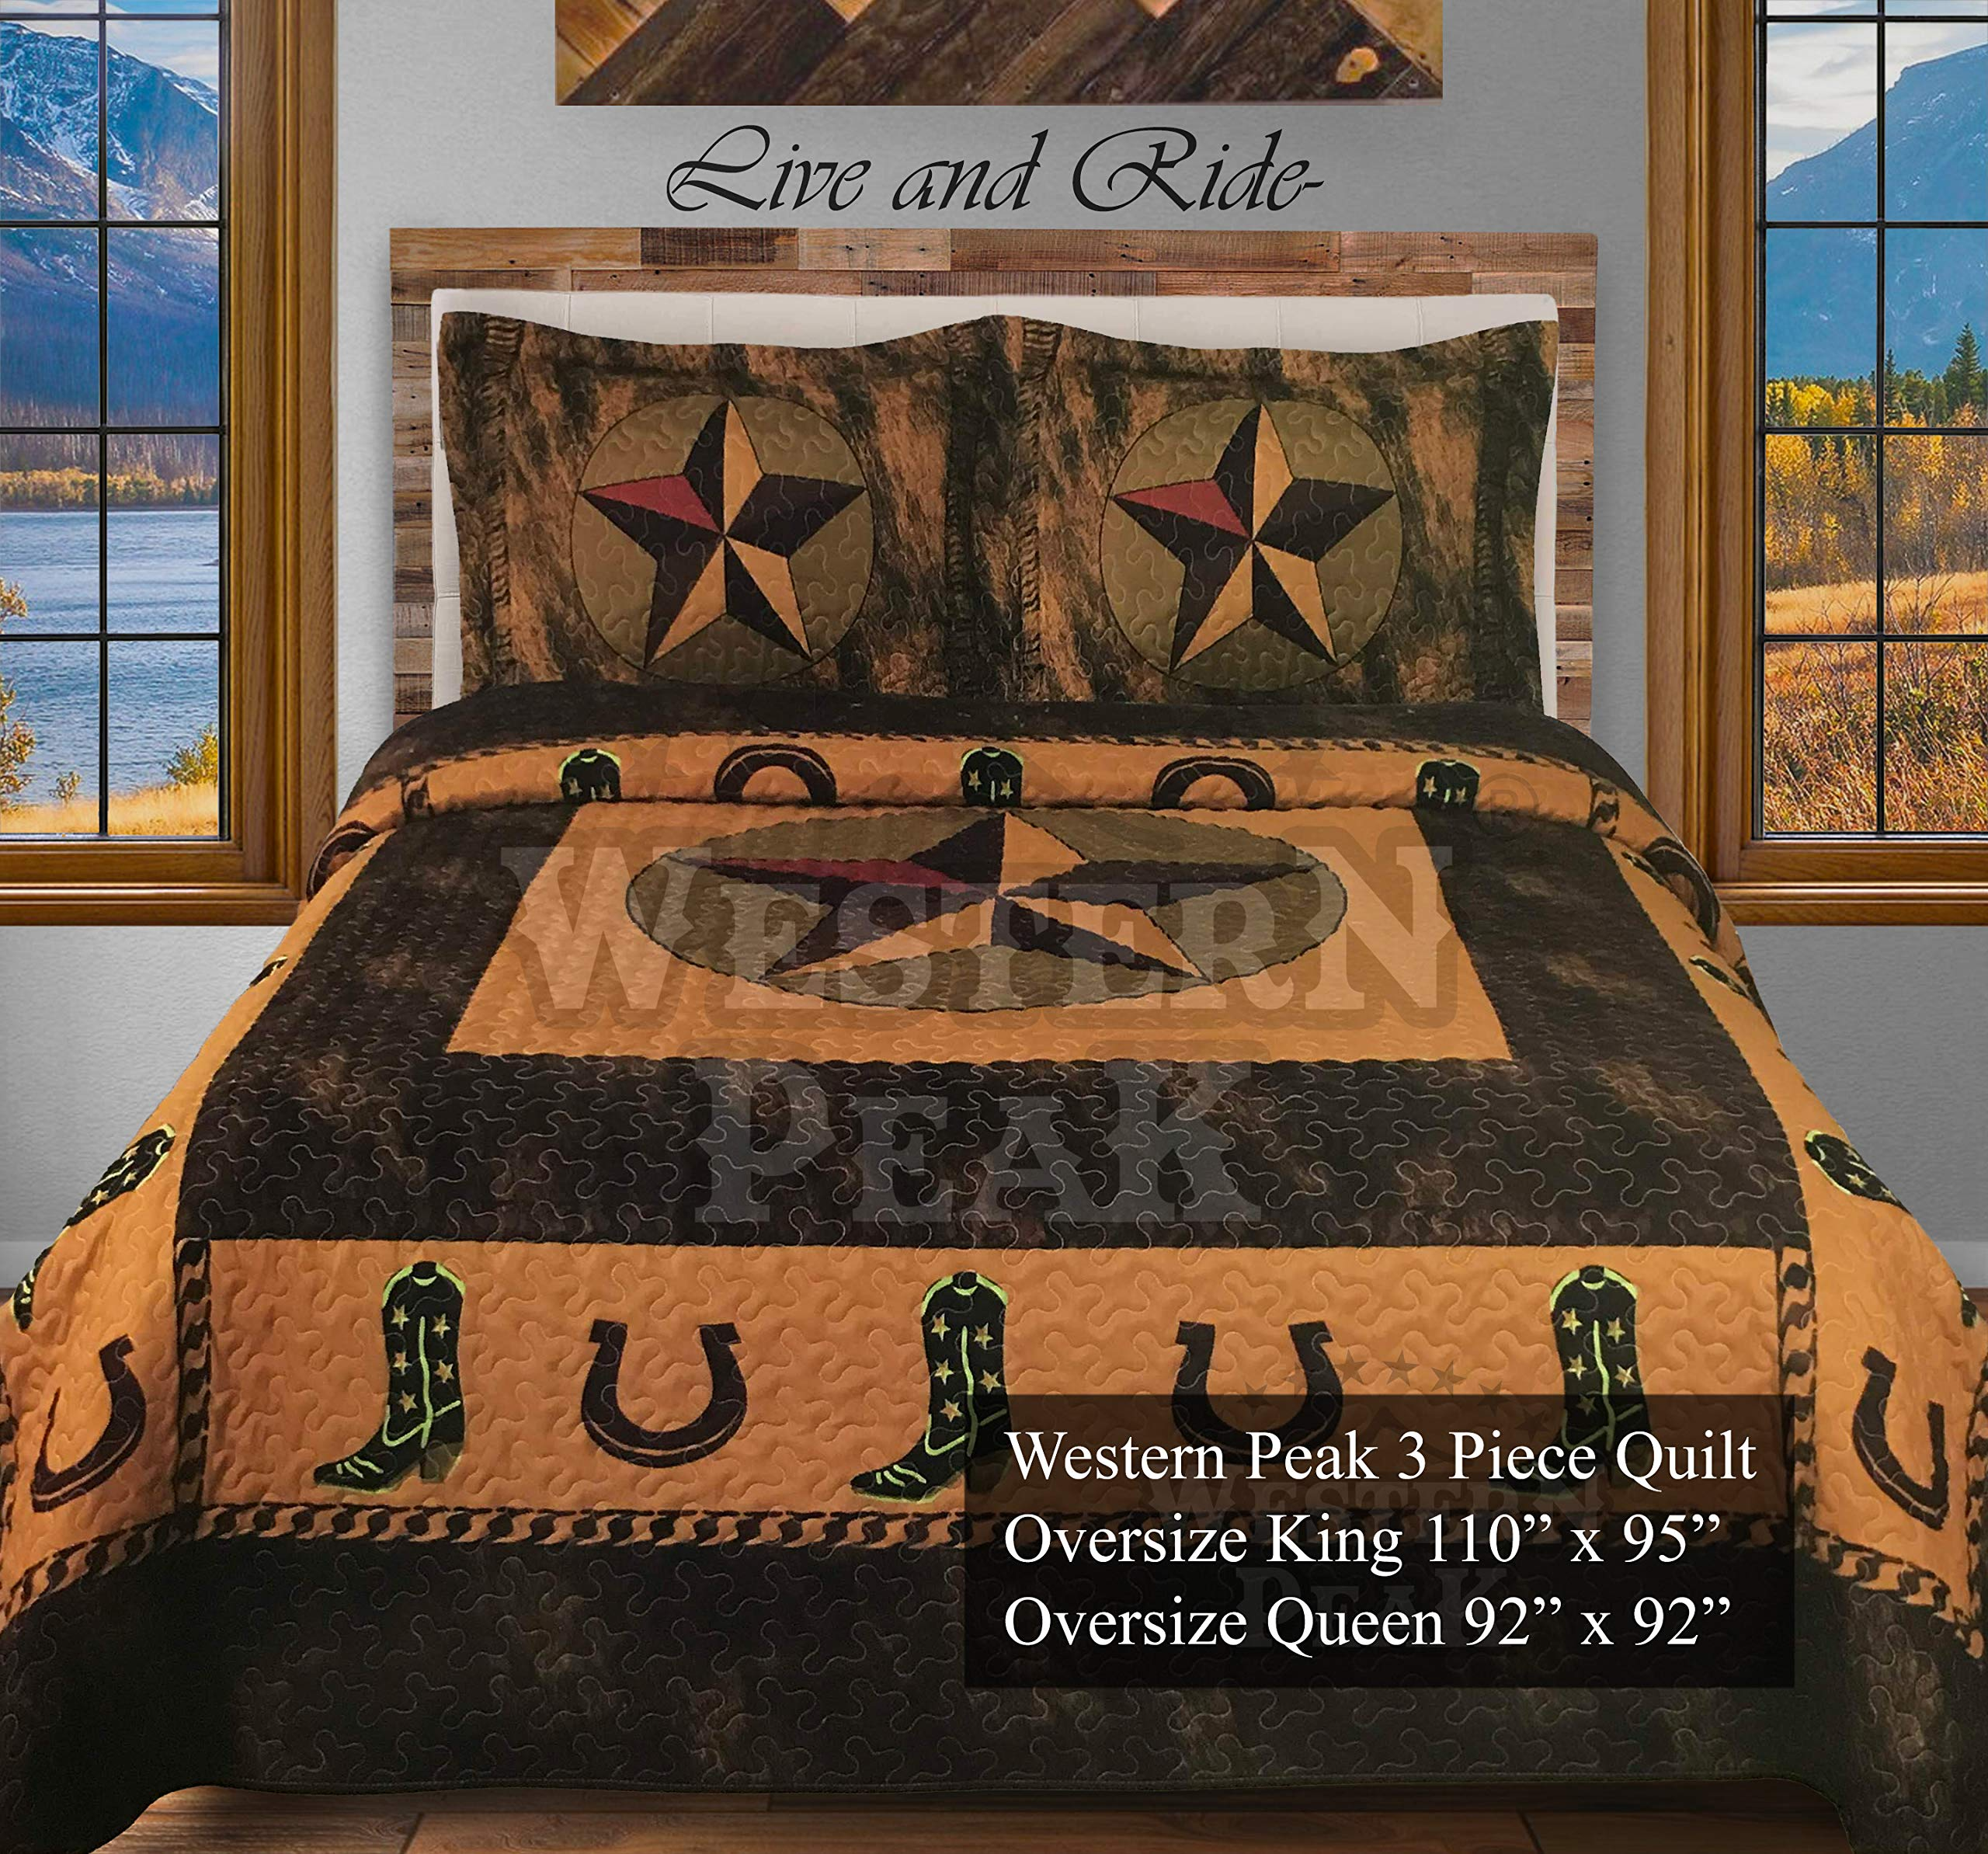 Western Peak 3 Pc Luxury Western Texas Cross Praying Cowboy Horse Cabin Lodge Quilt Bedspread OVERSIZE Comforter (Gold Cowboy, King)